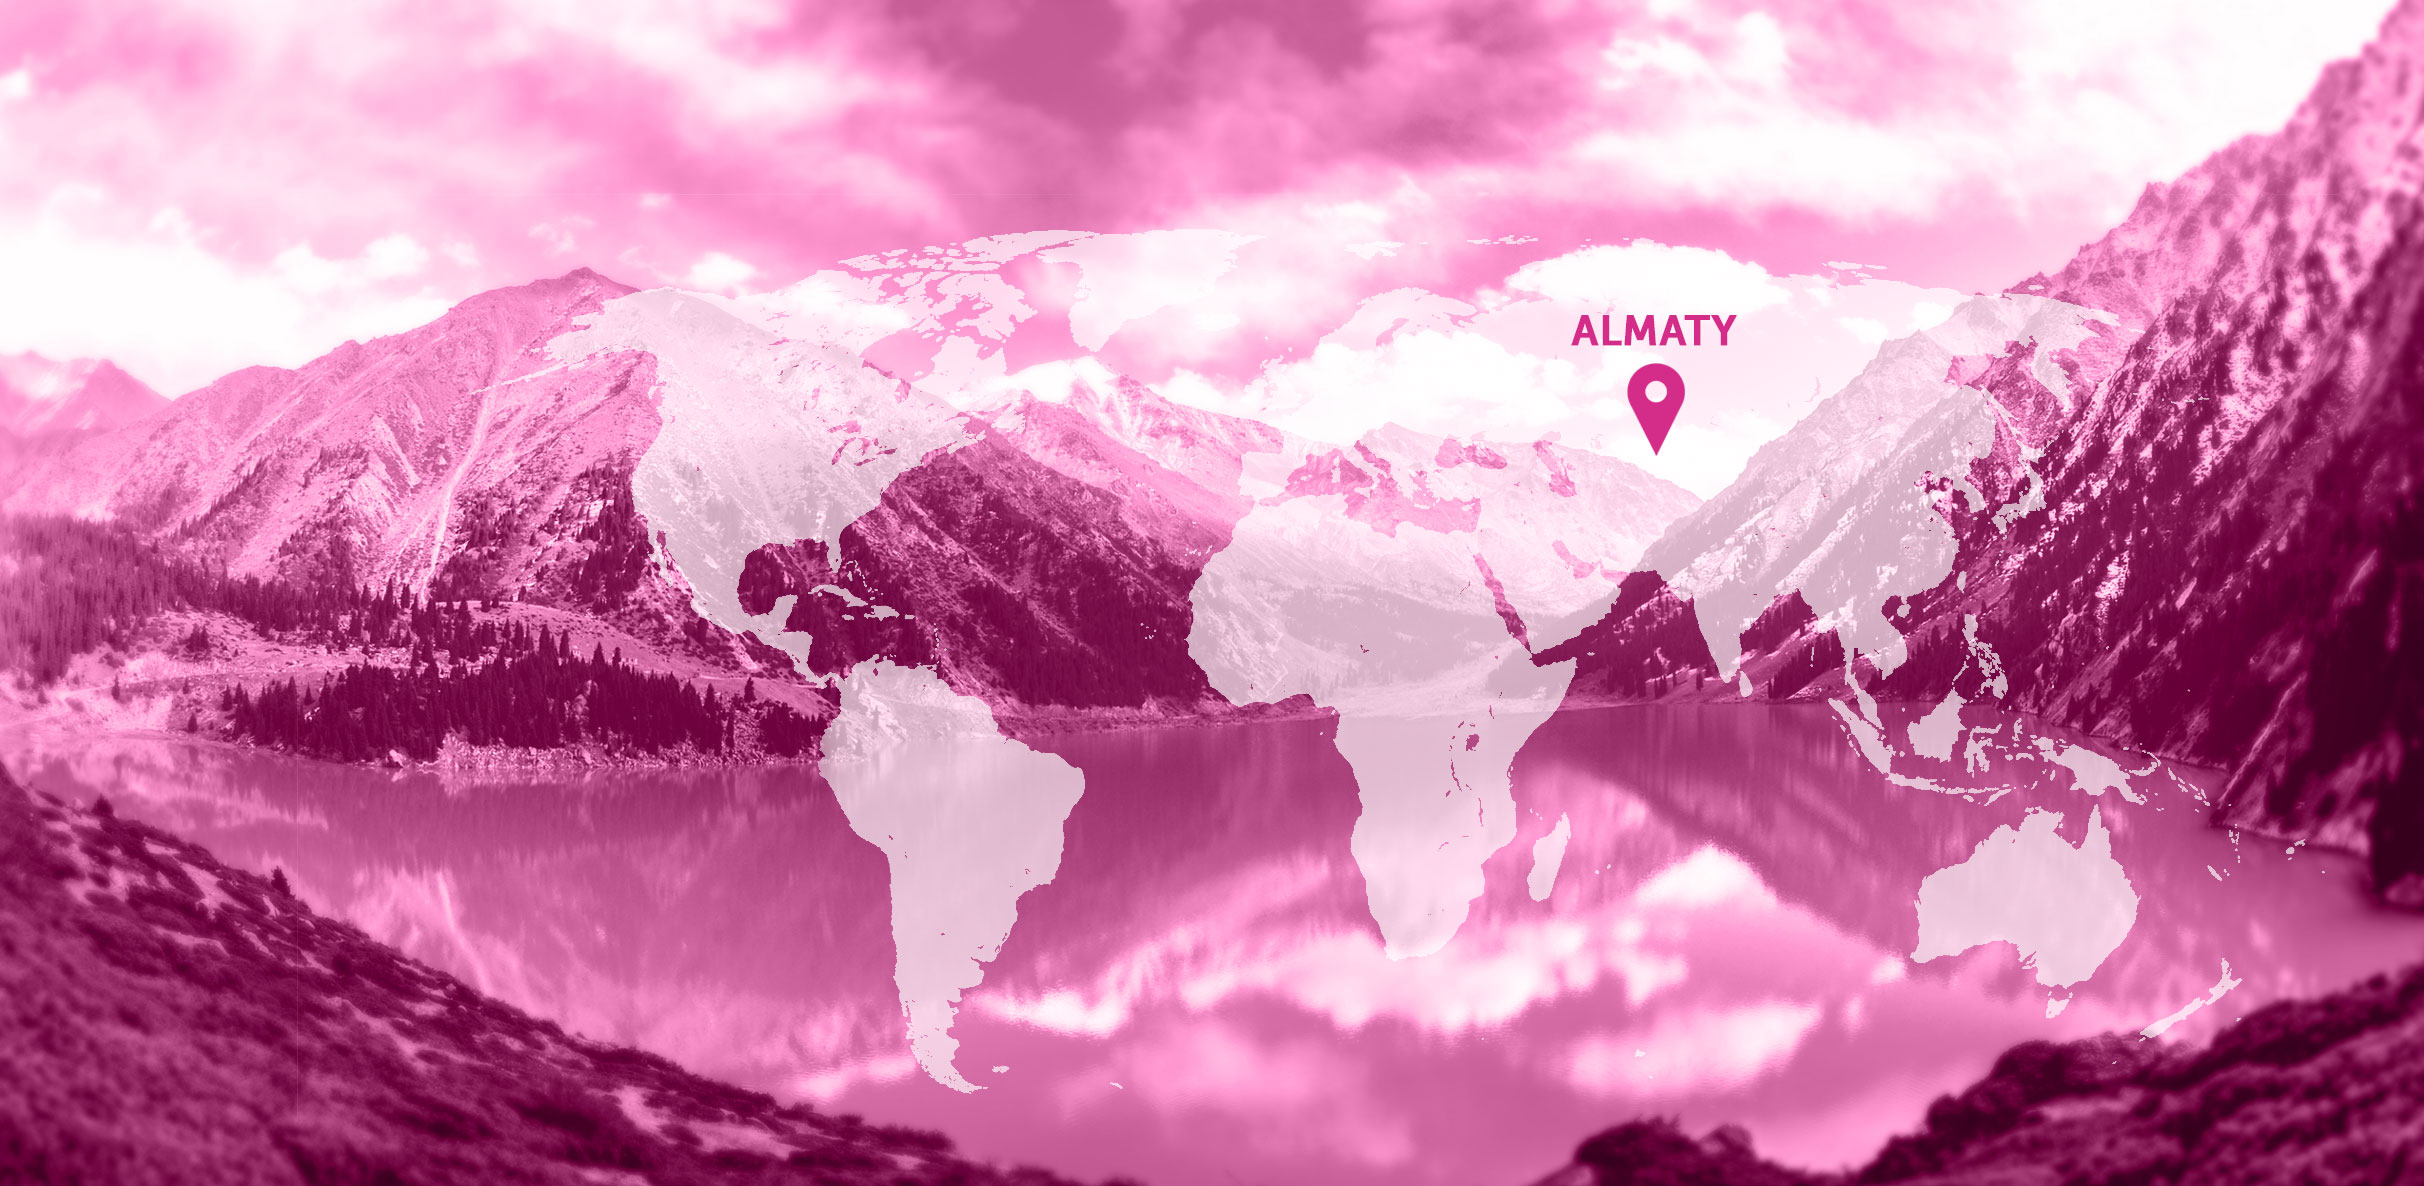 almaty_map.jpg